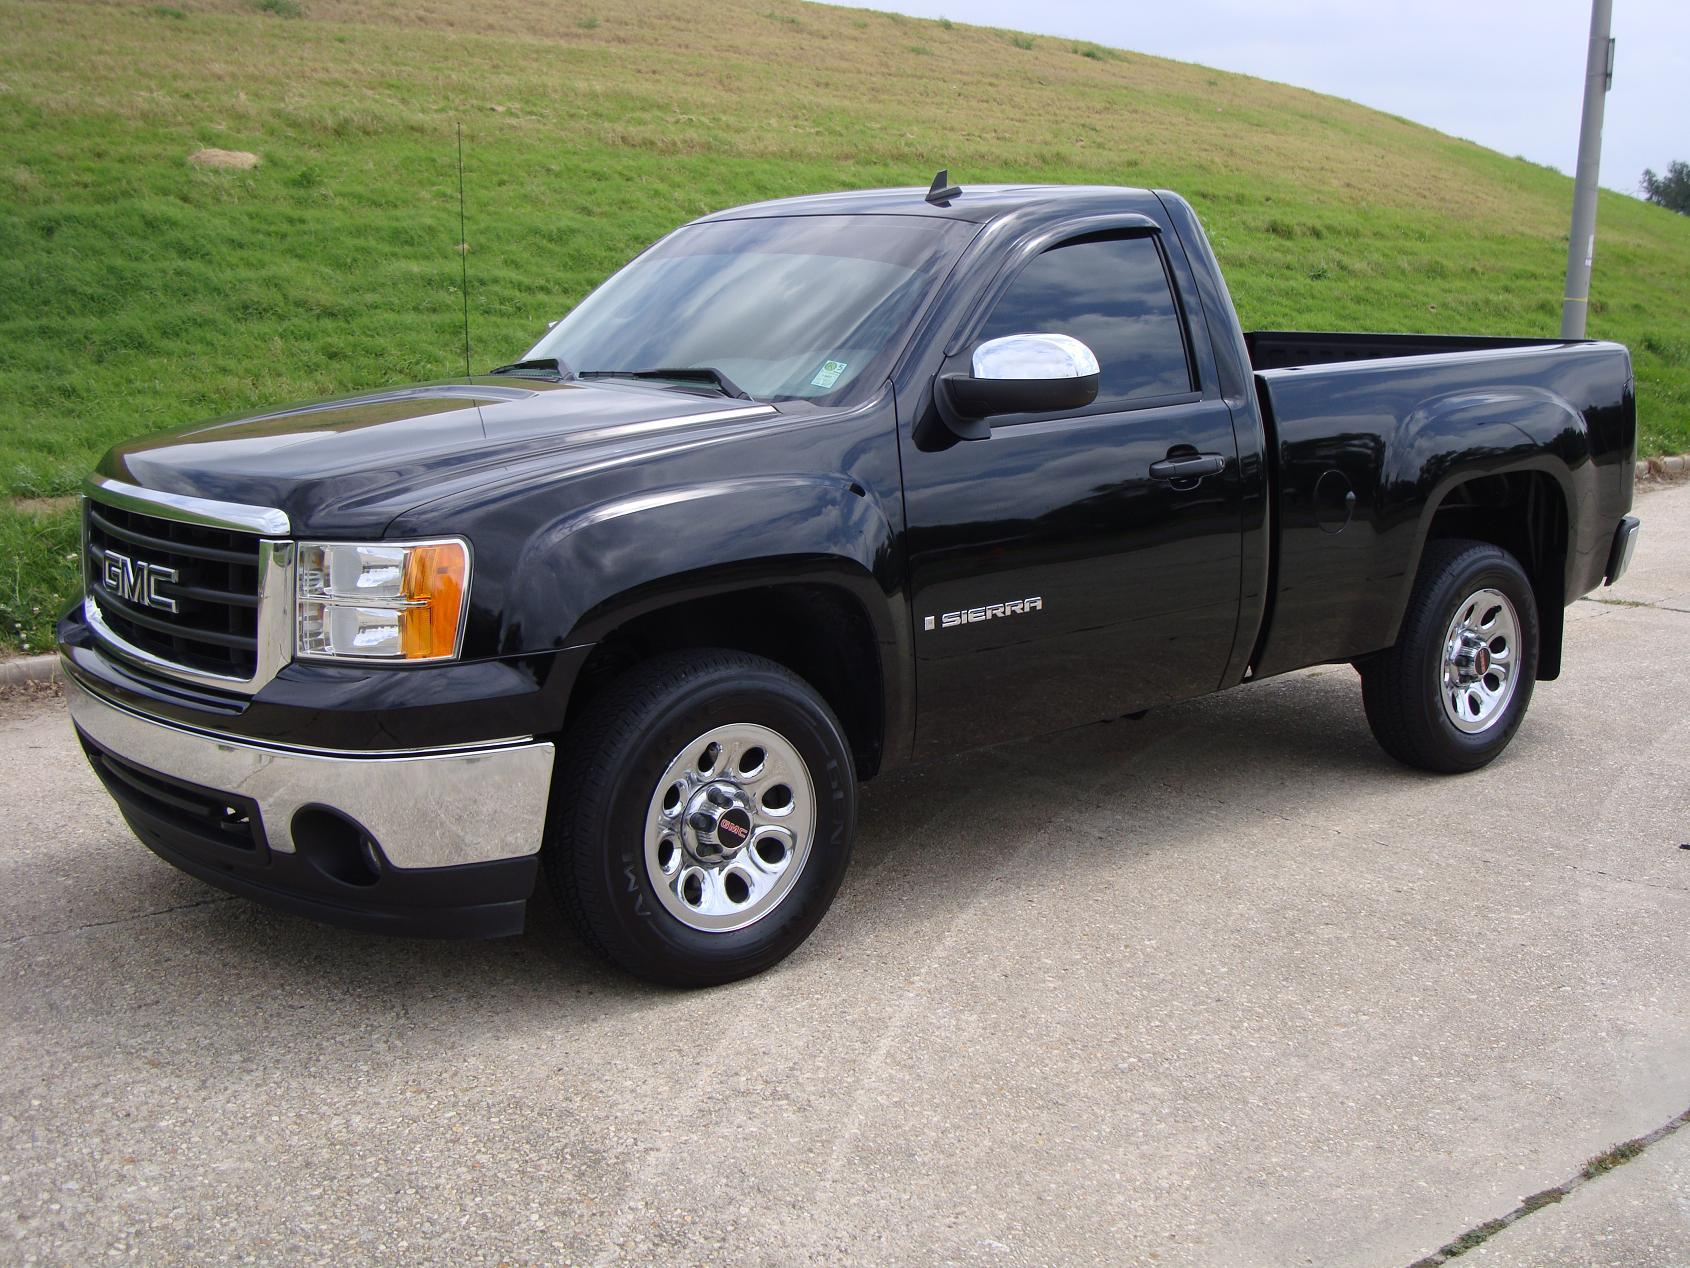 miramballer 2008 gmc sierra 1500 regular cab specs photos. Black Bedroom Furniture Sets. Home Design Ideas